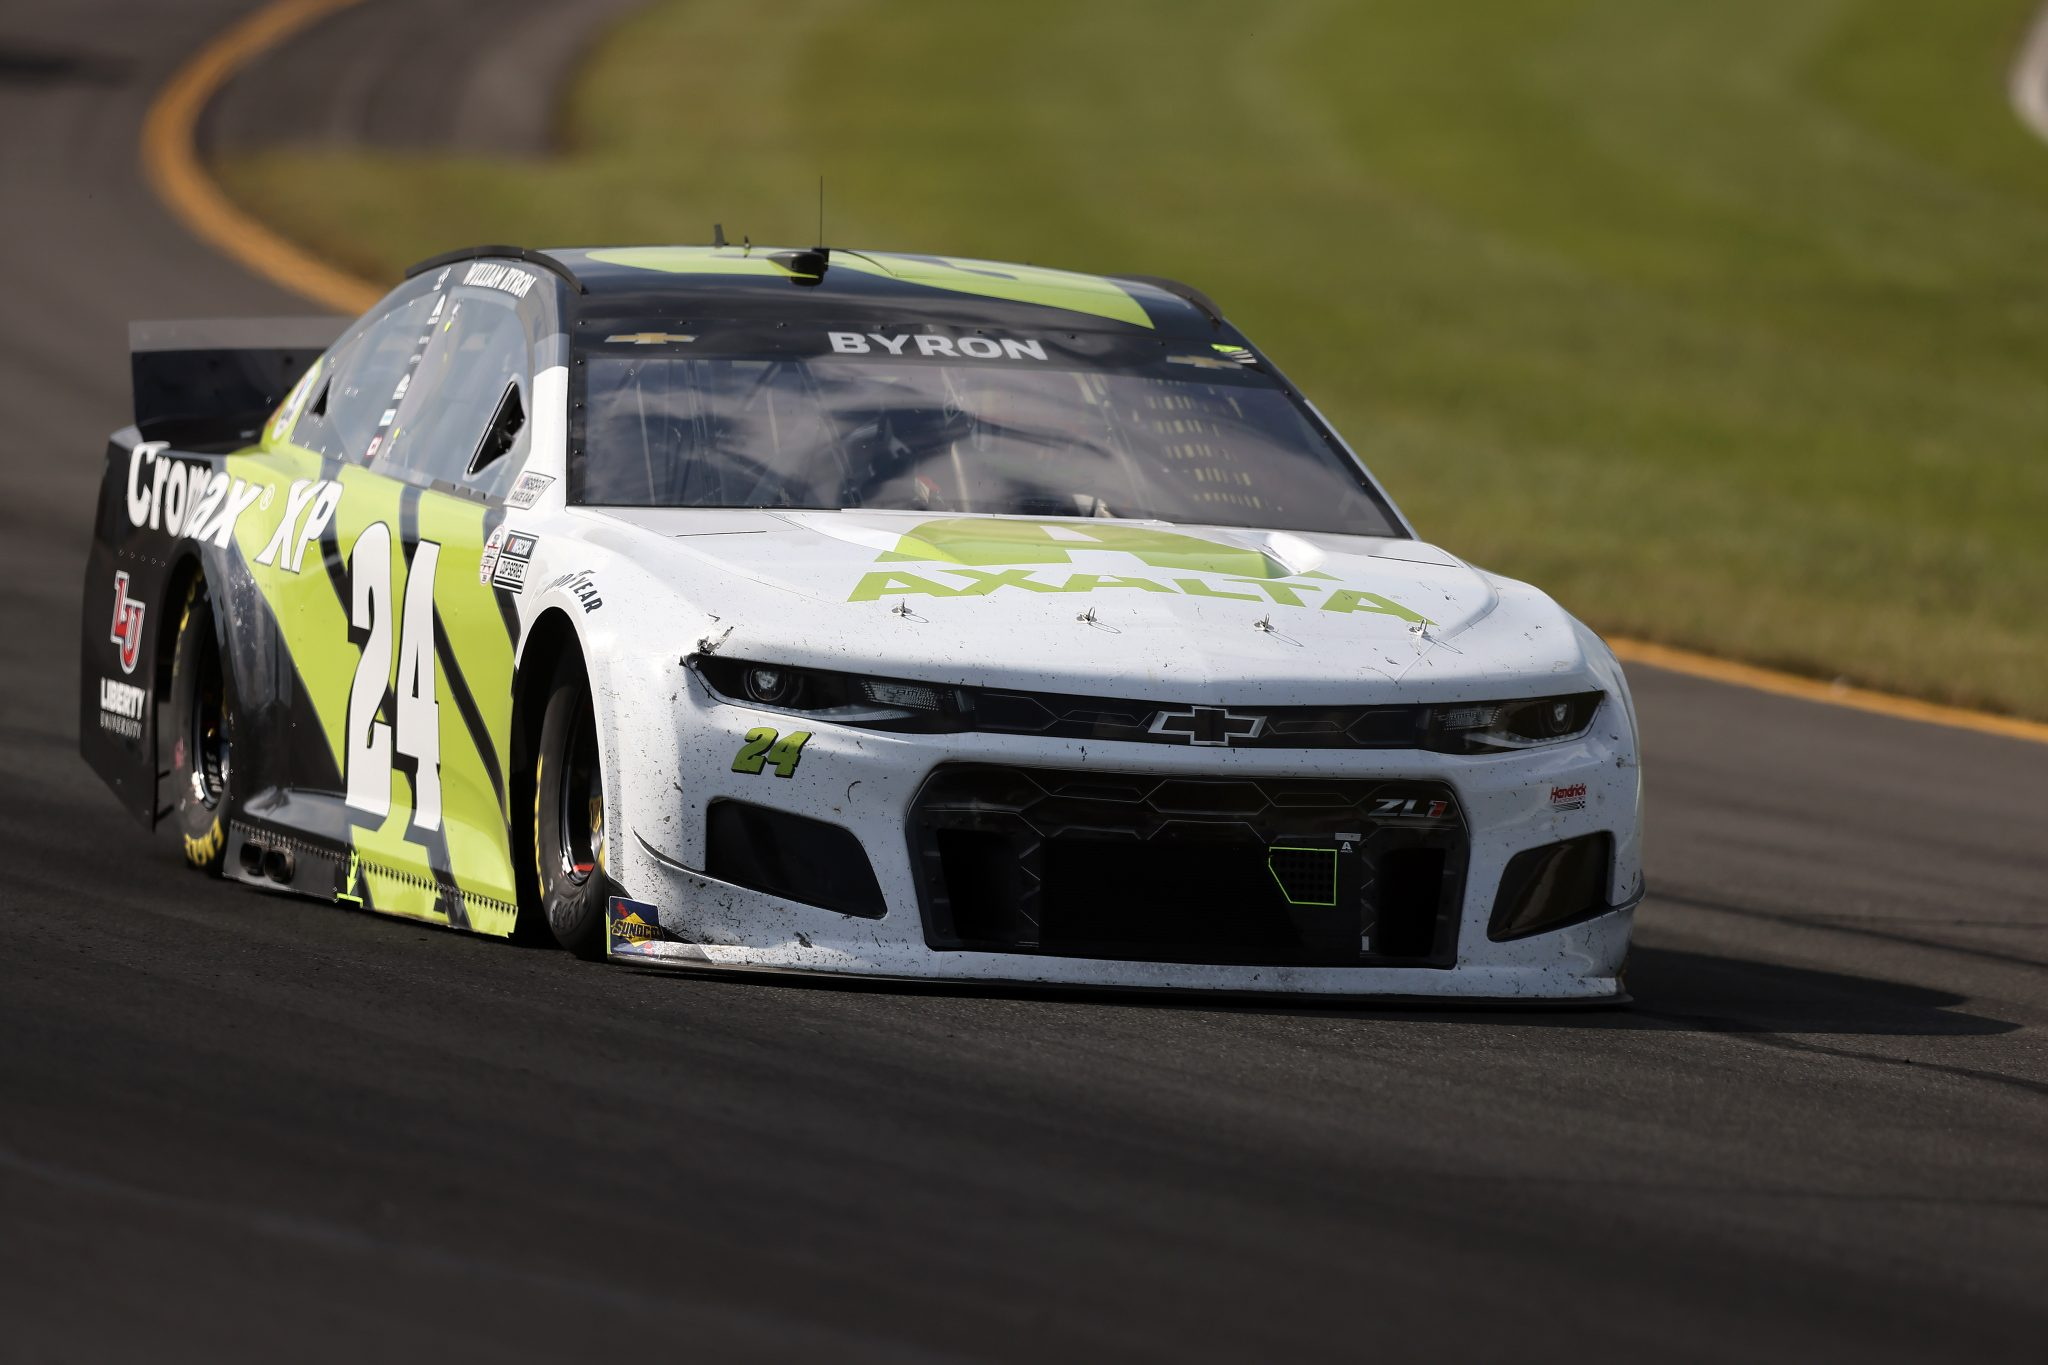 LONG POND, PENNSYLVANIA - JUNE 27: William Byron, driver of the #24 Axalta Color of the Year Chevrolet, drives during the NASCAR Cup Series Explore the Pocono Mountains 350 at Pocono Raceway on June 27, 2021 in Long Pond, Pennsylvania. (Photo by James Gilbert/Getty Images) | Getty Images